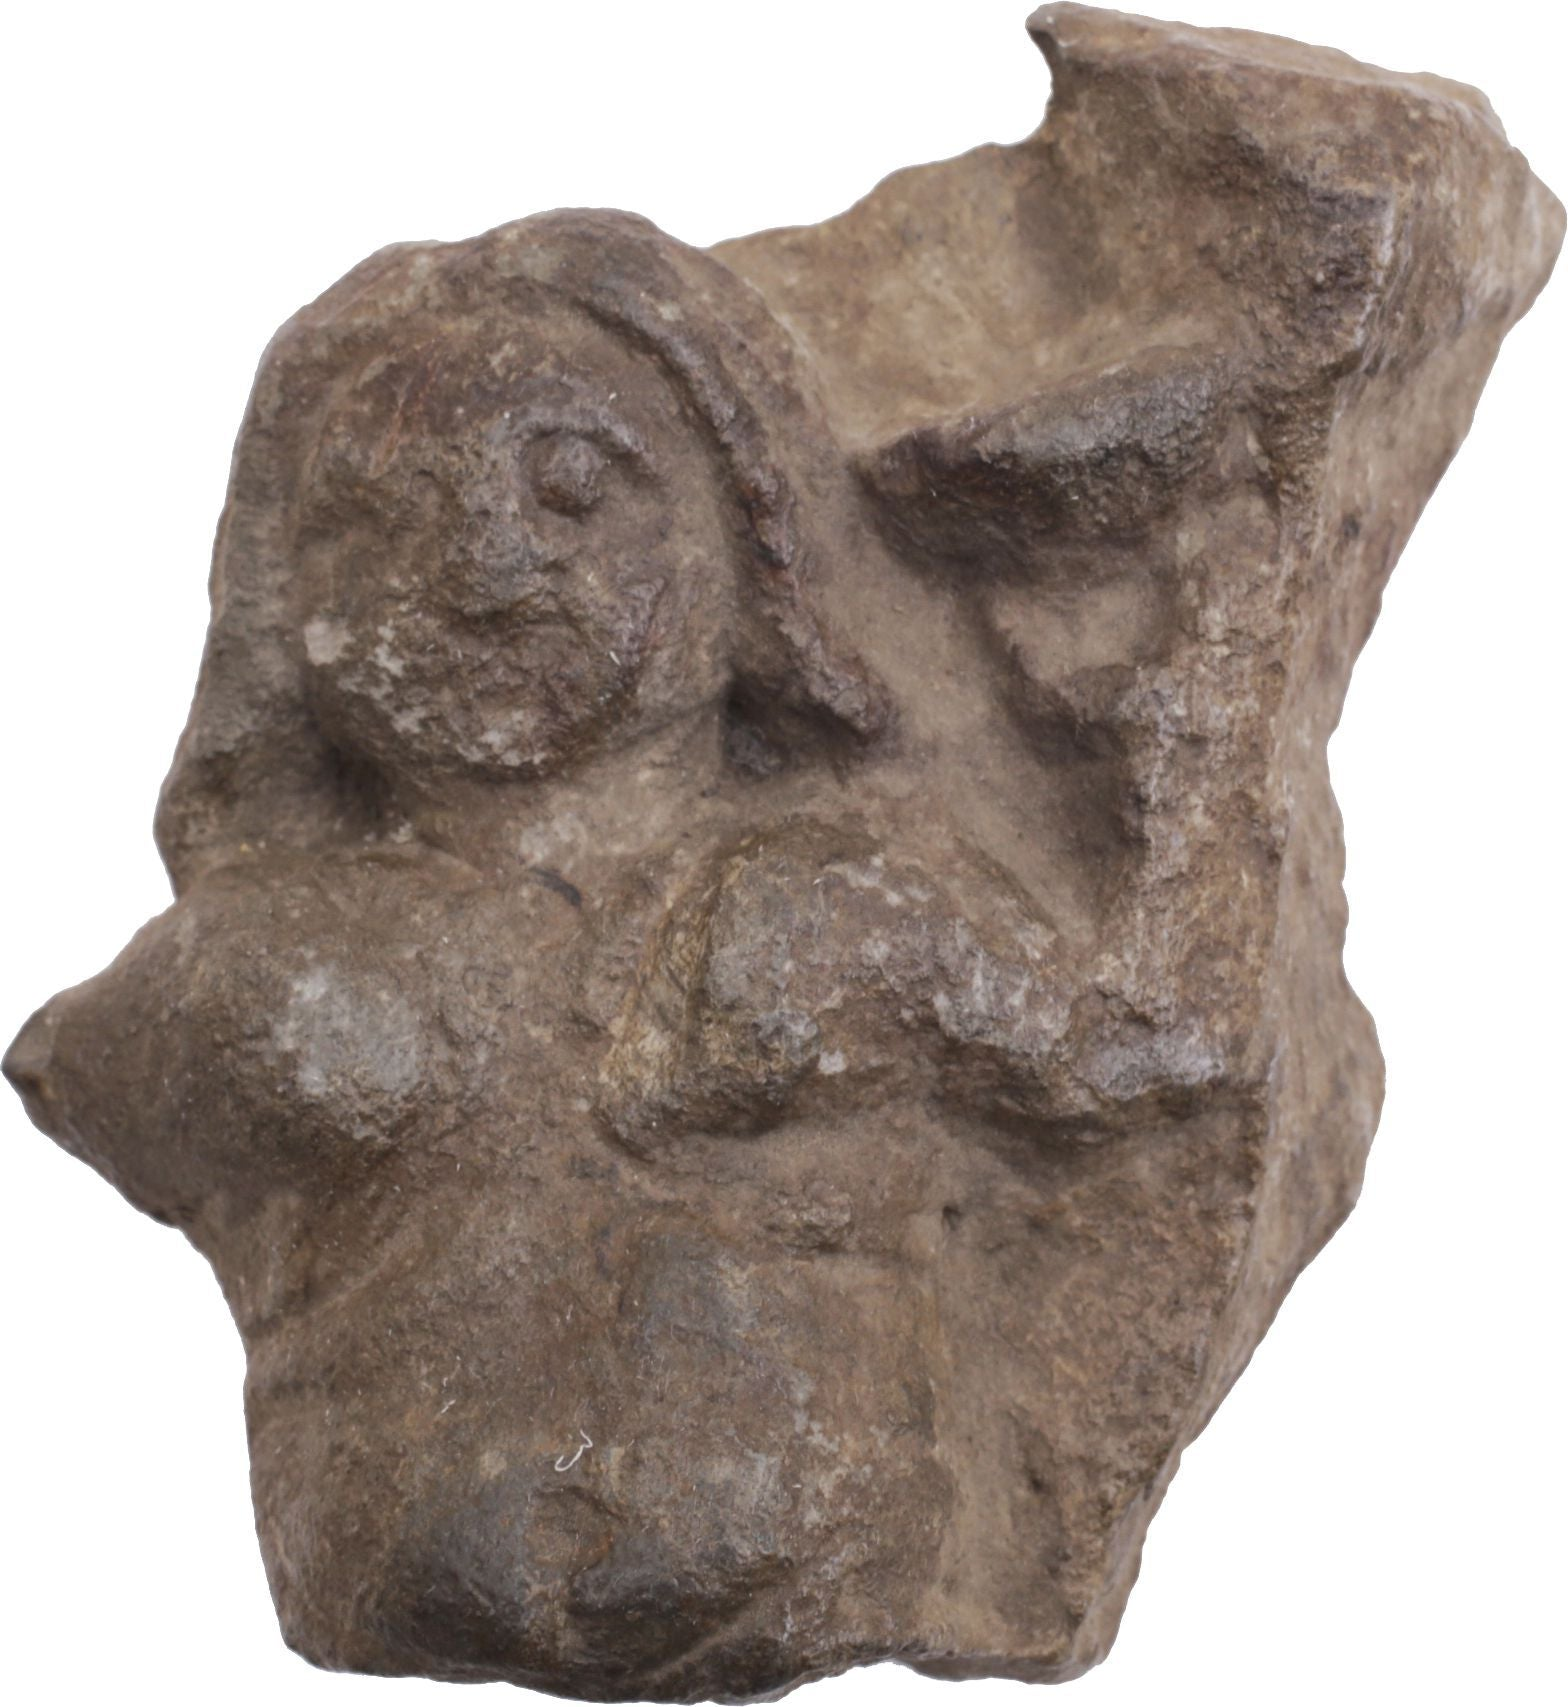 Egyptian Carved Stone Figure - Product